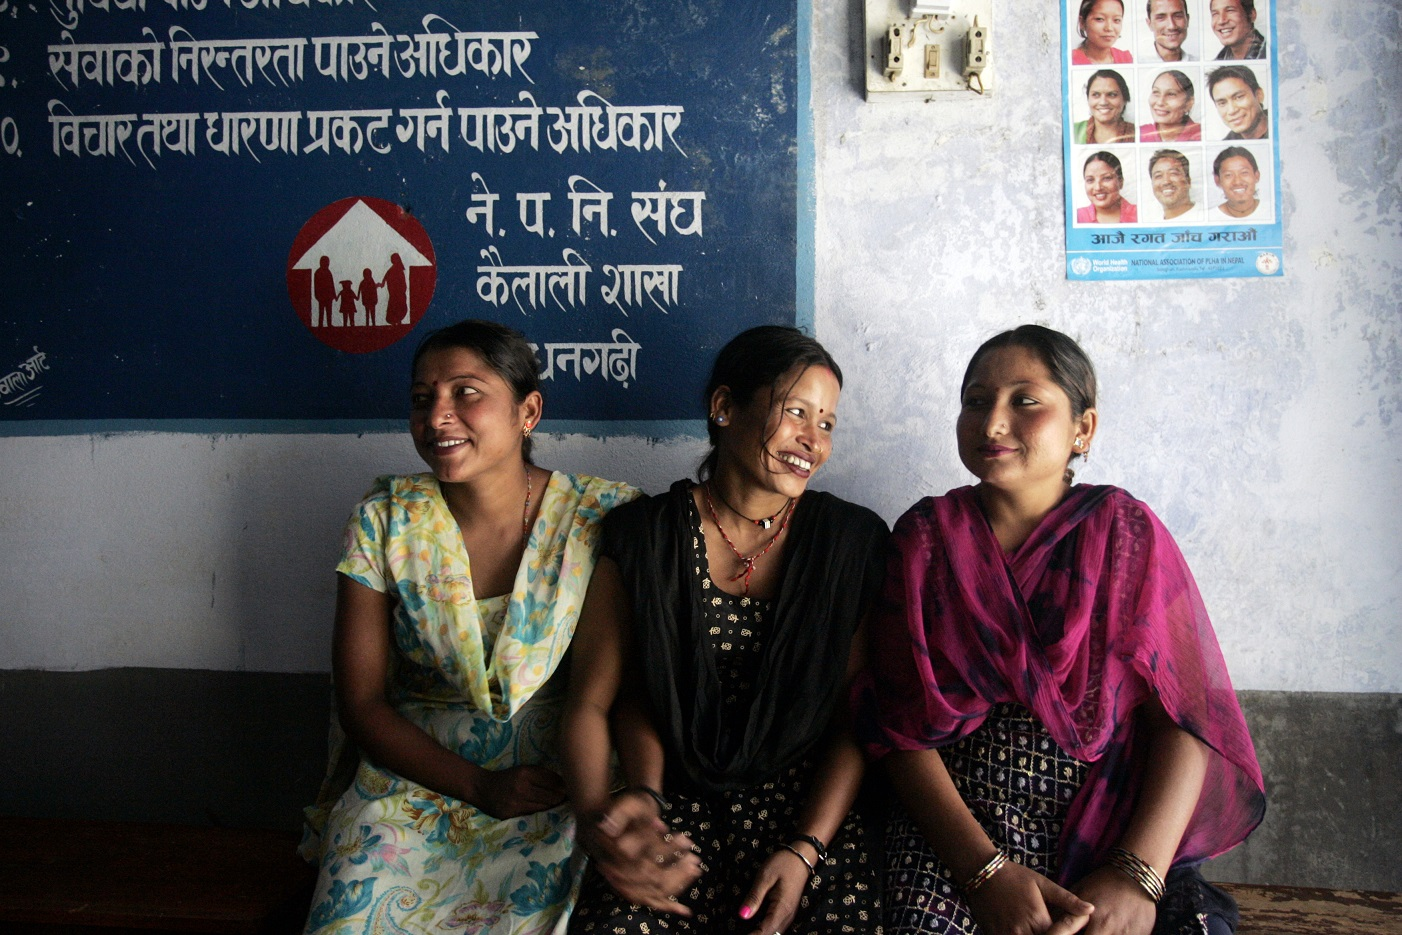 Badi sex worker Sunchi,25 (right) , with friends Manisha,25 (left) and Binita, 29 (centre). The three girls are all working in the sex trade and have arrived at an FPAN clinic for a medical check up.